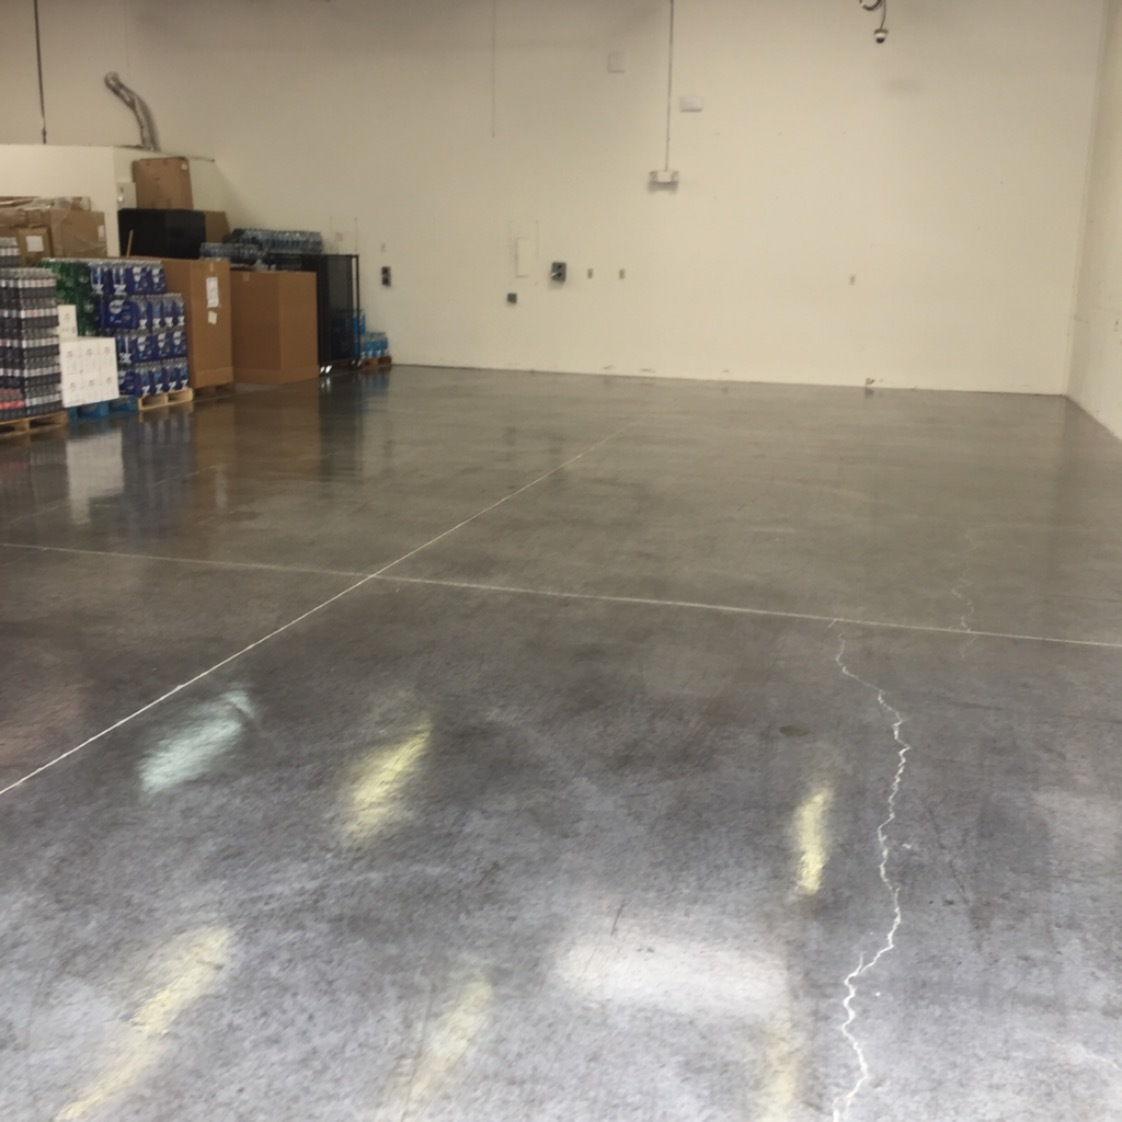 concrete sealing; concrete polishing; polishing concrete; concrete polish; warehouse floor polishing; seal concrete; sealing concrete; concrete sealer; seal concrete; concrete seal; paver cleaning; cleaning pavers; paver sealing; sealing pavers; paver sealer; paver seal; seal paver; concrete stain; stain concrete; staining concrete; driveway staining; driveway sealing; staining driveway; concrete patio staining; concrete patio stain; pressure washing; best pressure washing; power washing; best power washing; best concrete sealing; best concrete polishing; best concrete staining; commercial warehouse floor polishing; commercial concrete sealing;  concrete cleaning; concrete sealer